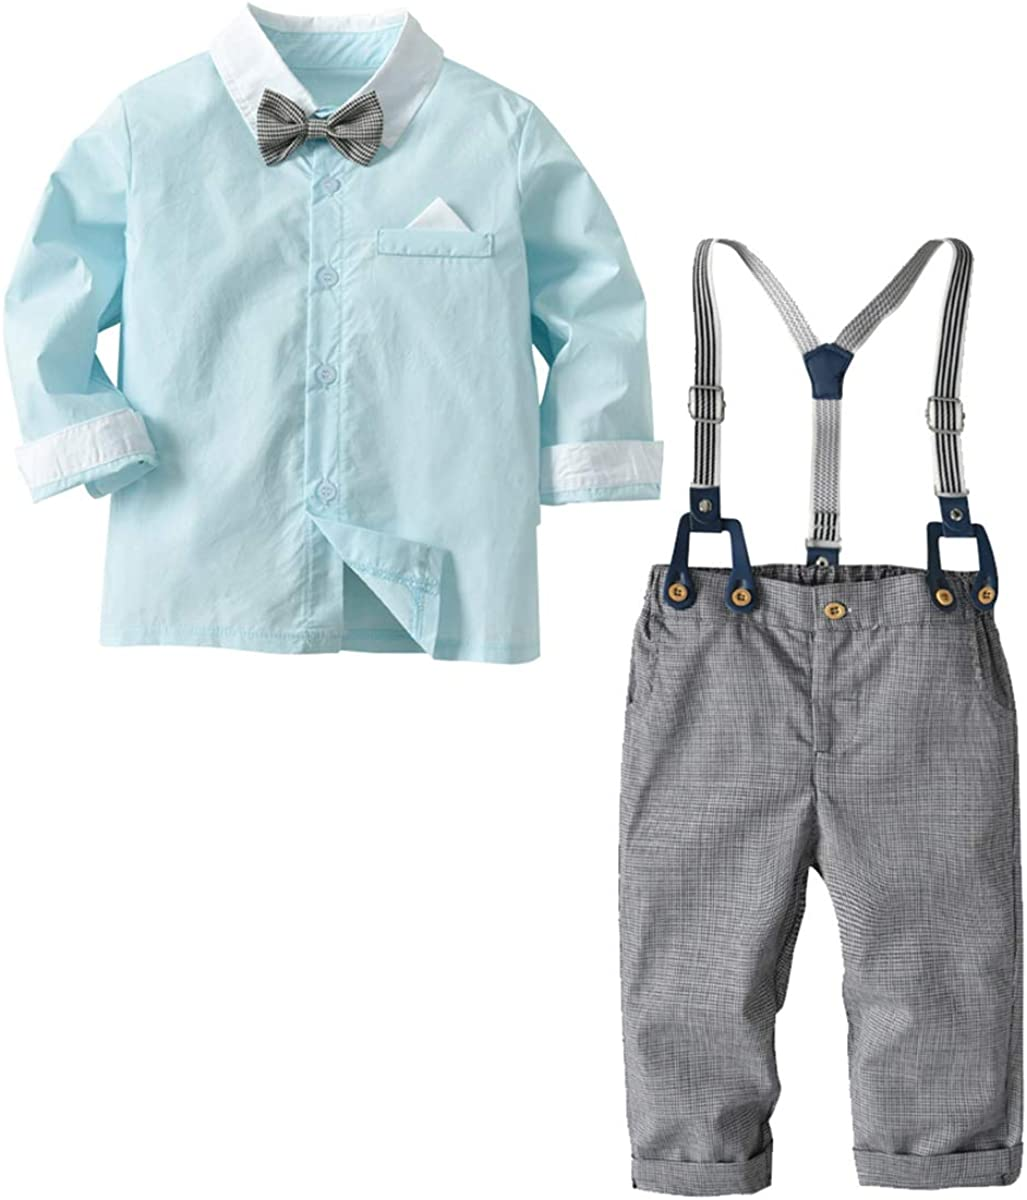 Suspender Pants Outfits Set Kids Toddler Boys Gentlemen Suit Long Sleeve Bow Tie Shirt